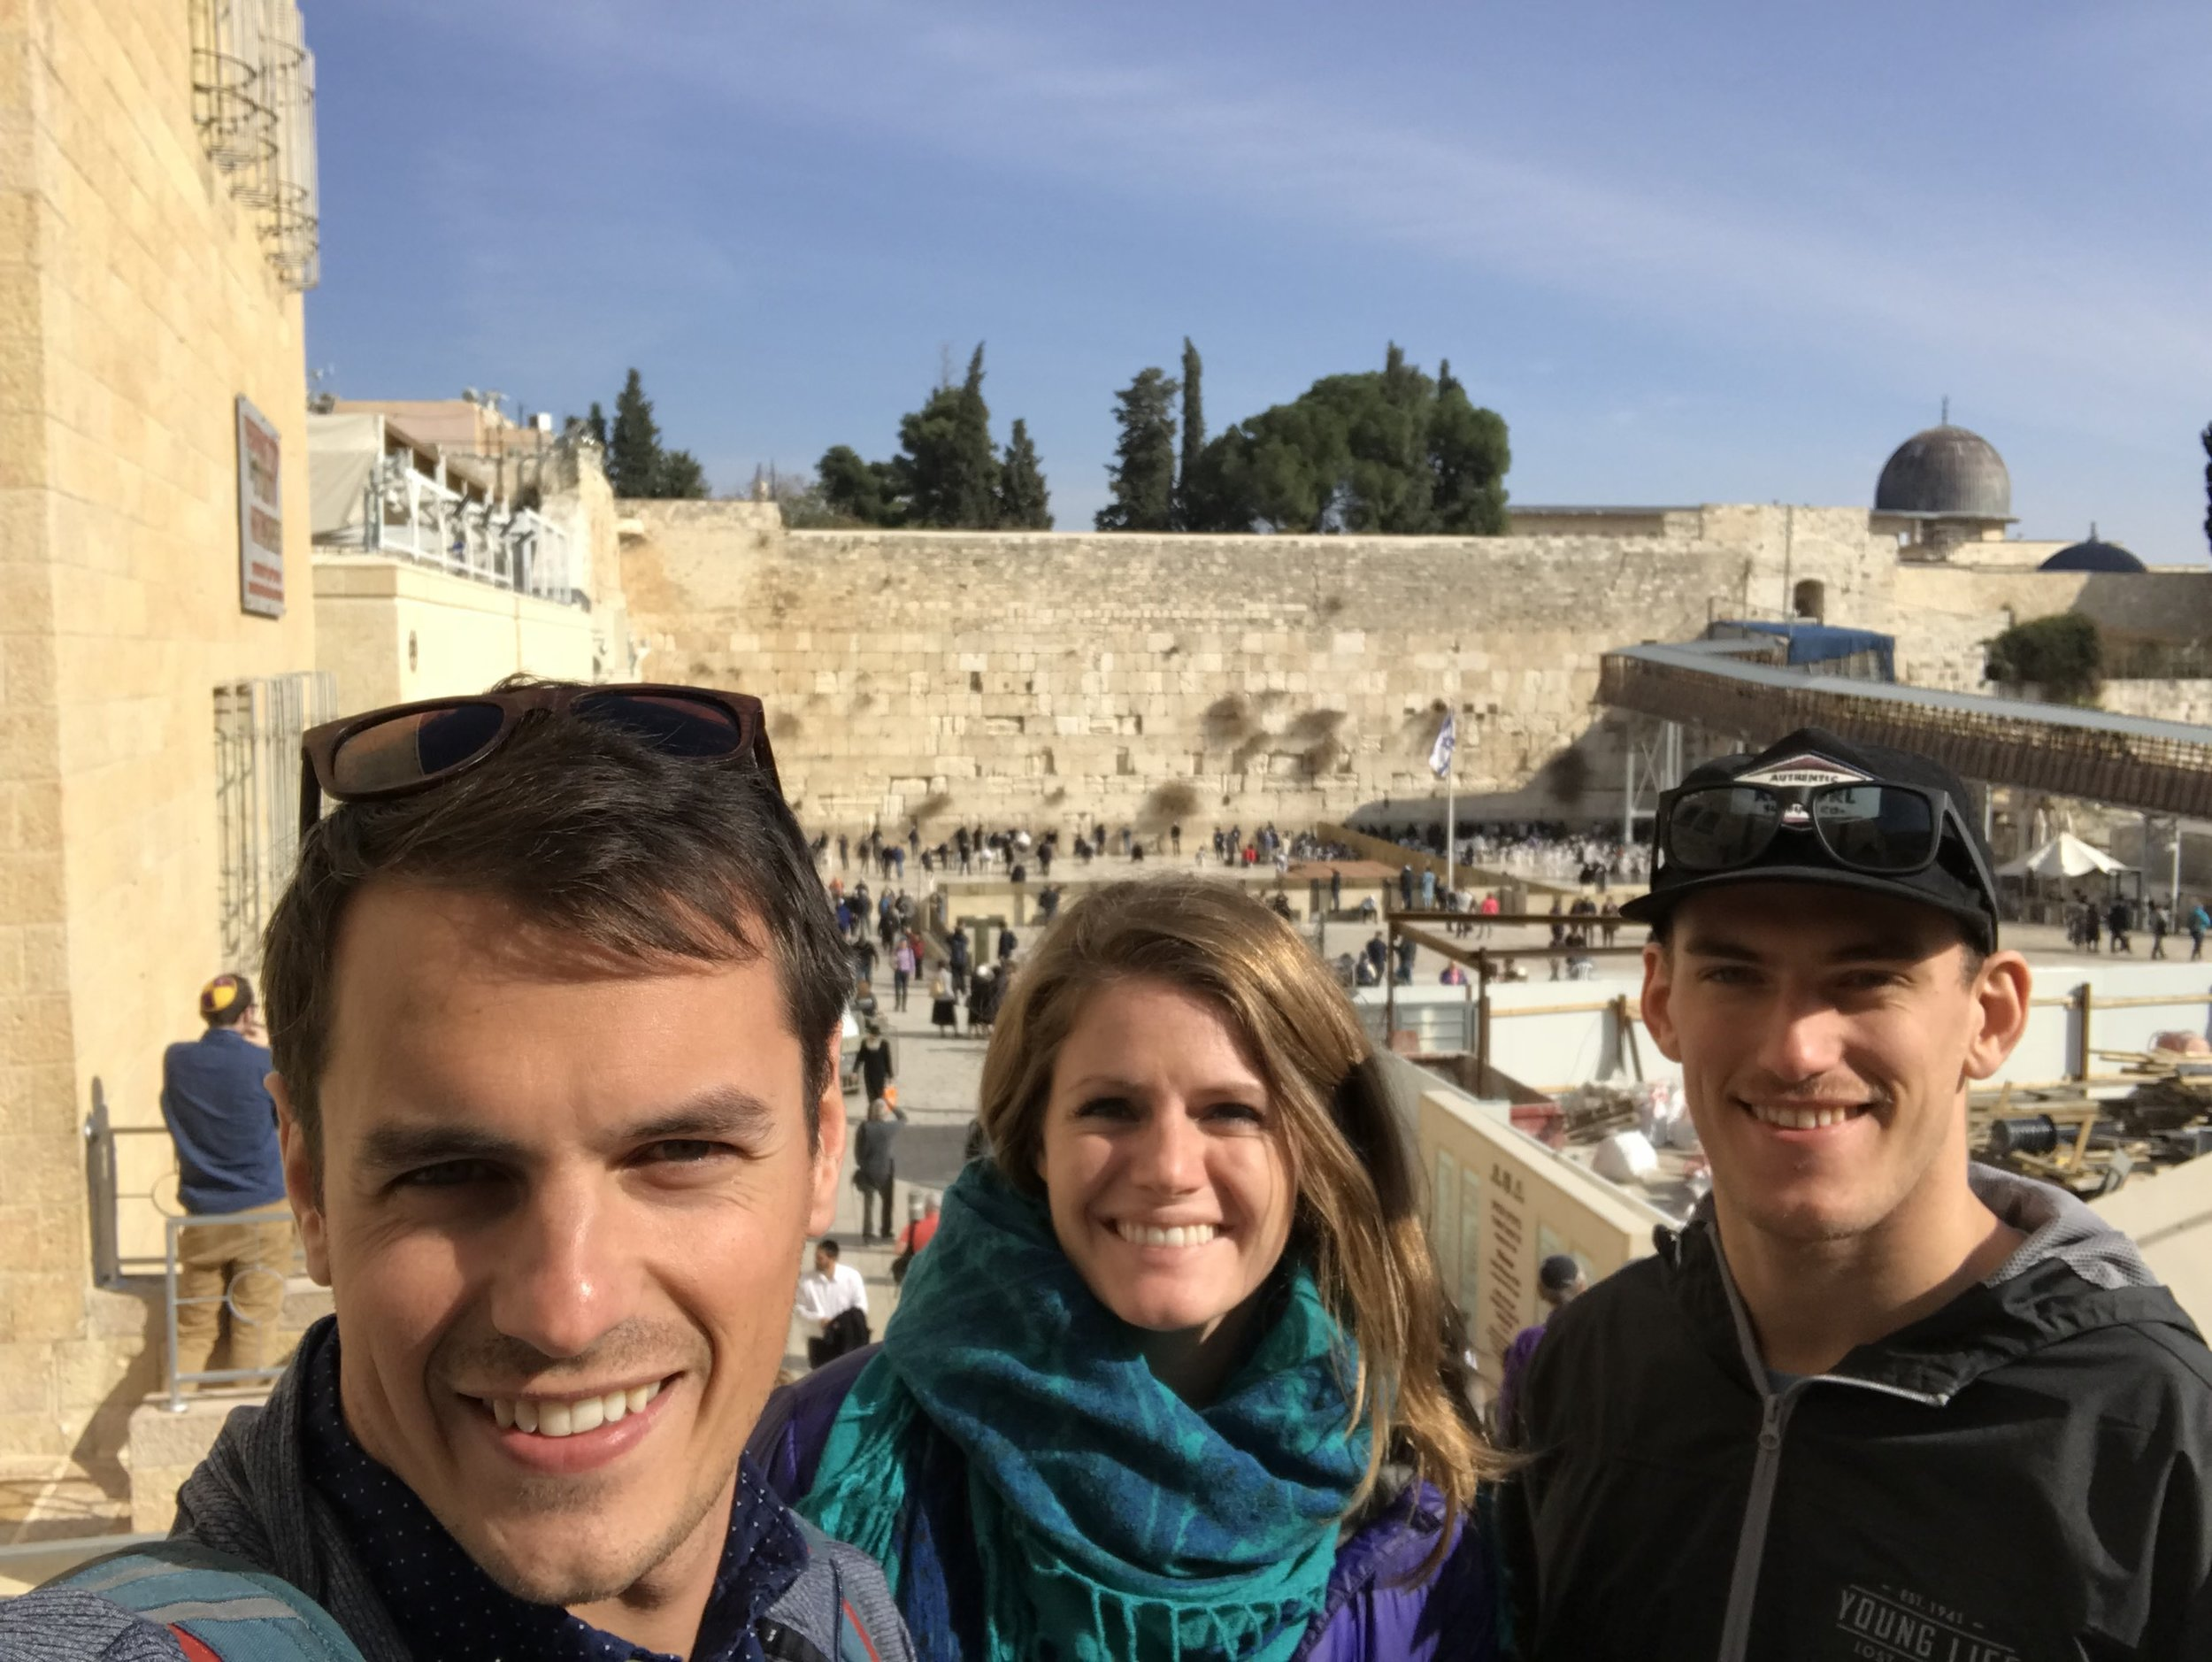 Western Wall is behind us